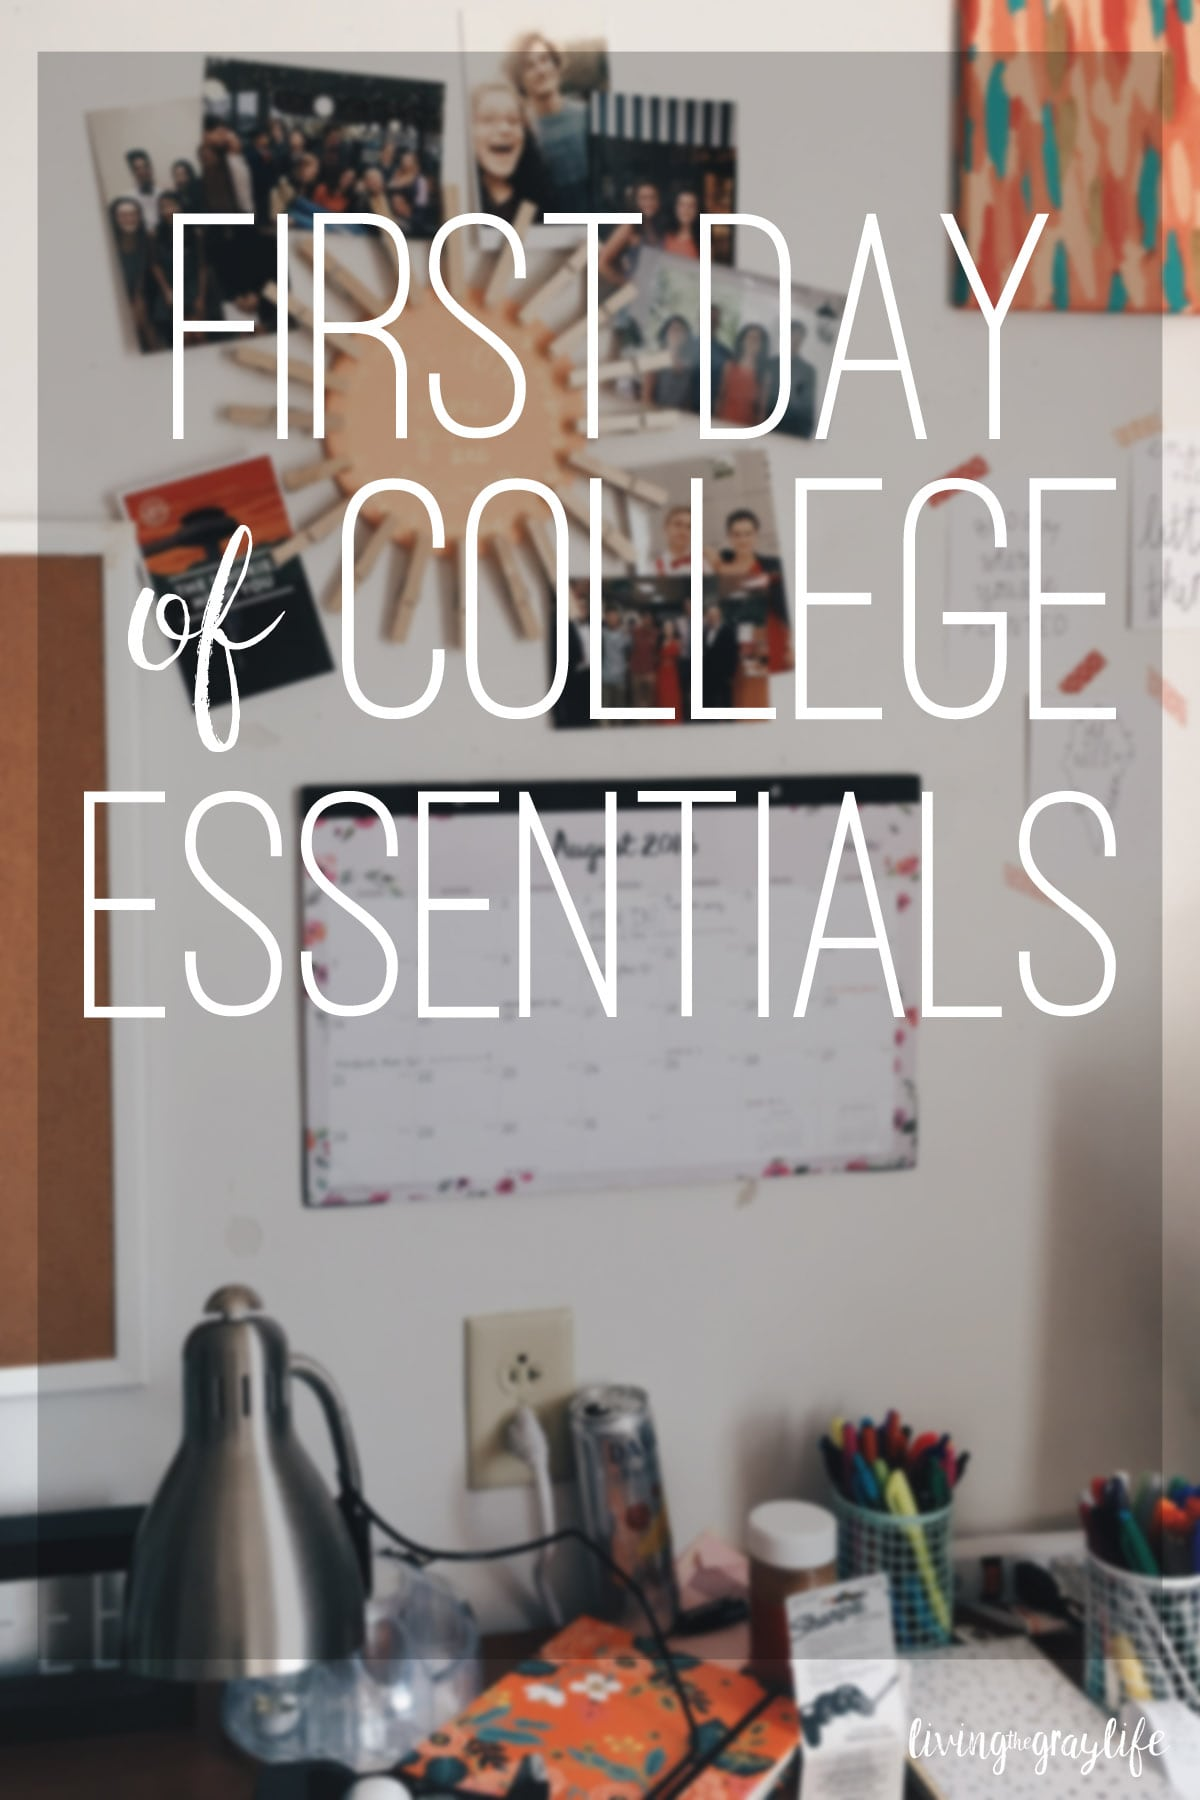 College Essentials for the First Day